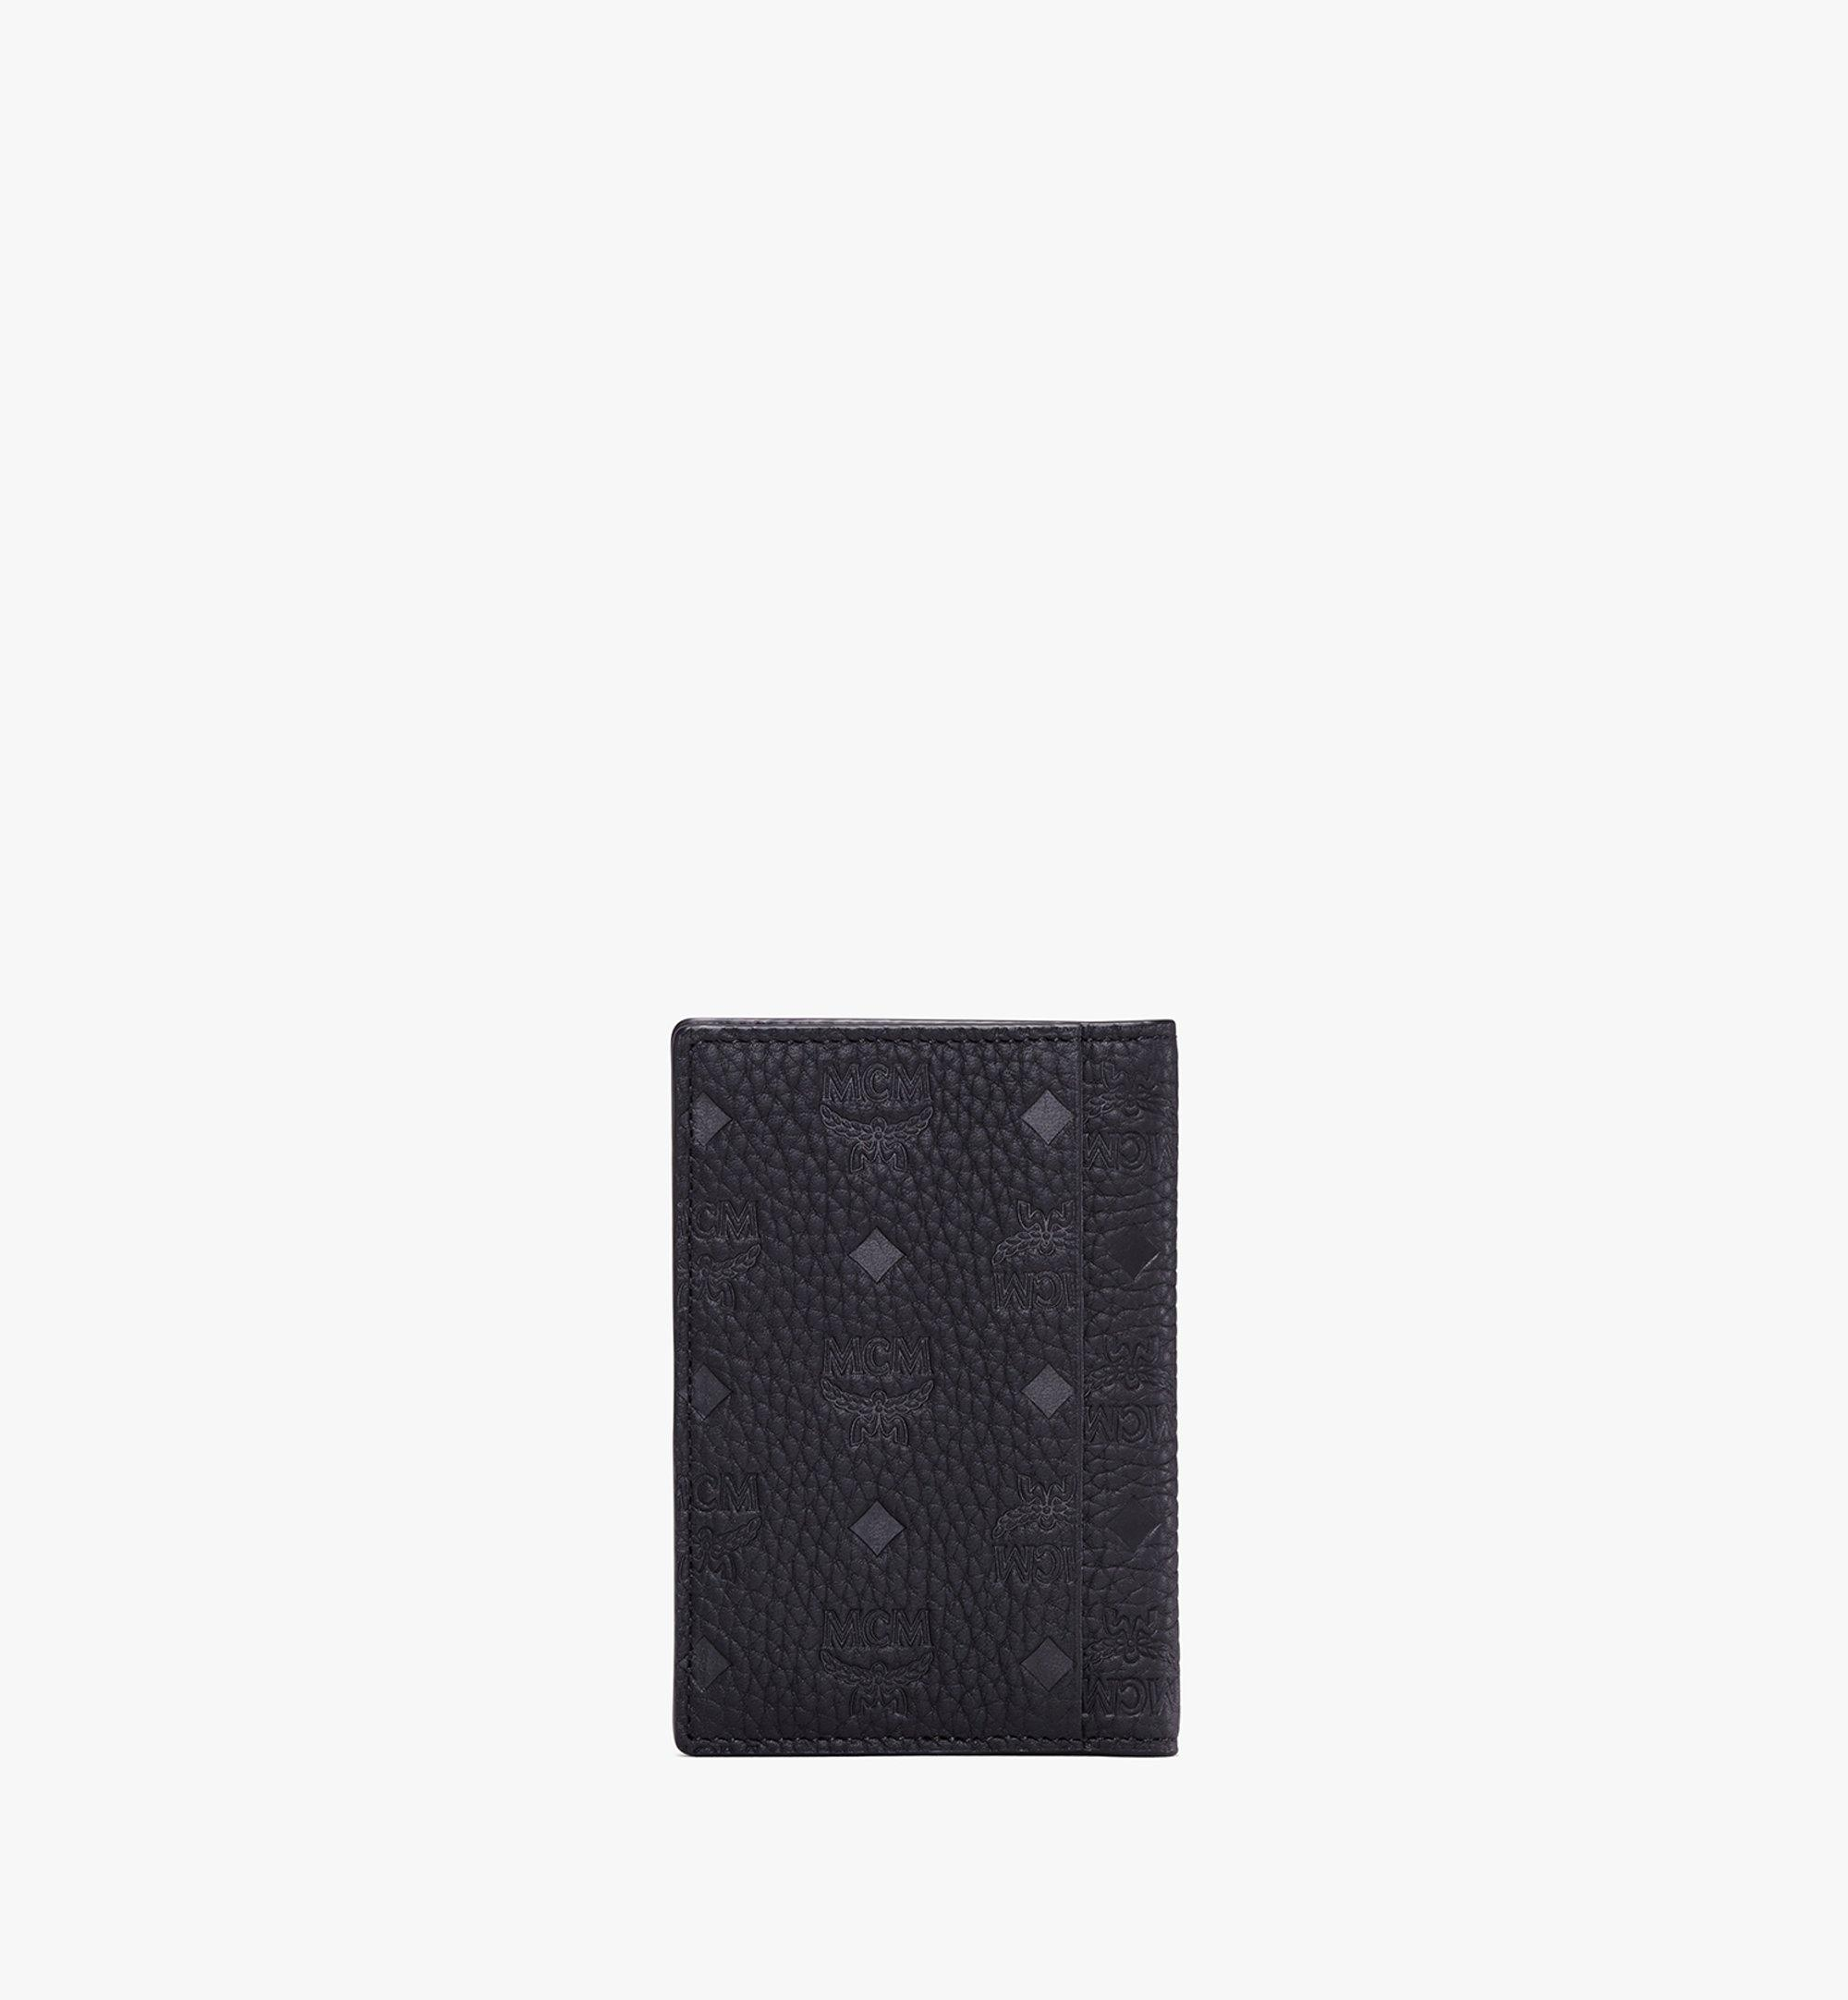 MCM Tivitat Two-Fold Card Wallet in Monogram Leather Black MXS9ABT25BK001 Alternate View 3